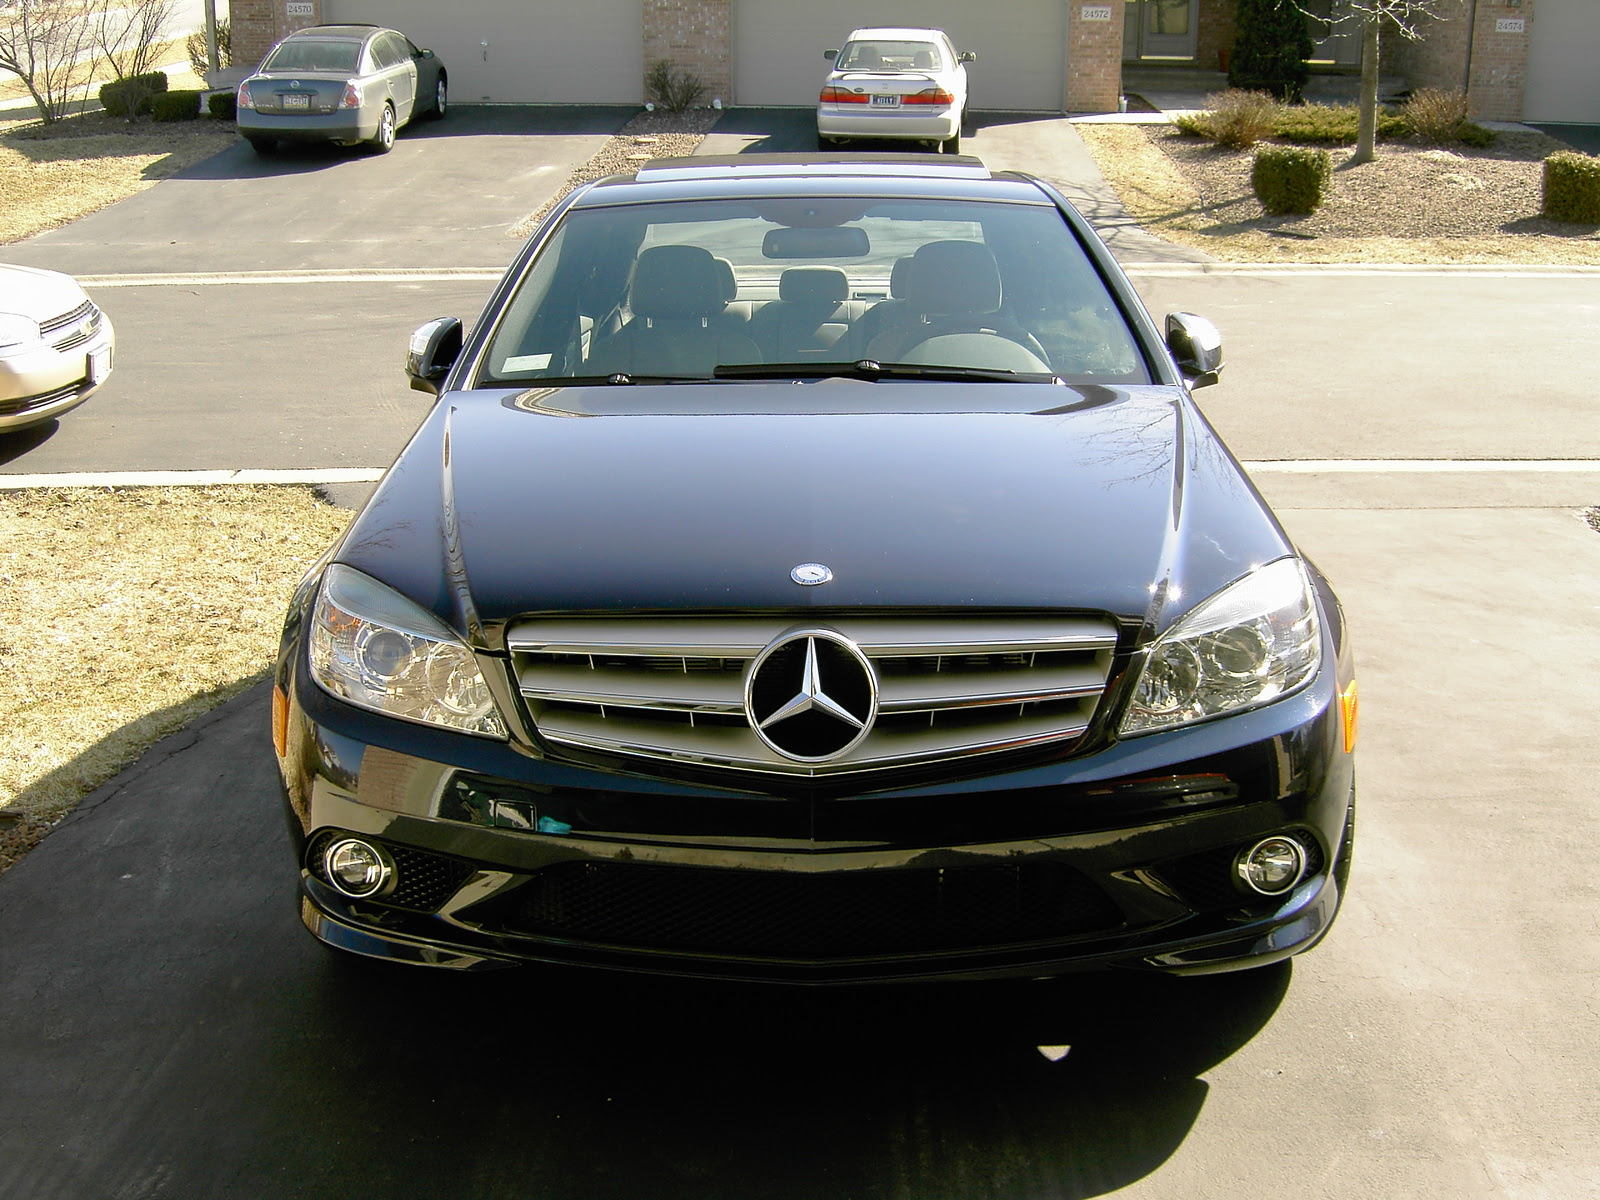 2008 Mercedes-Benz C-Class - Other Pictures - CarGurus